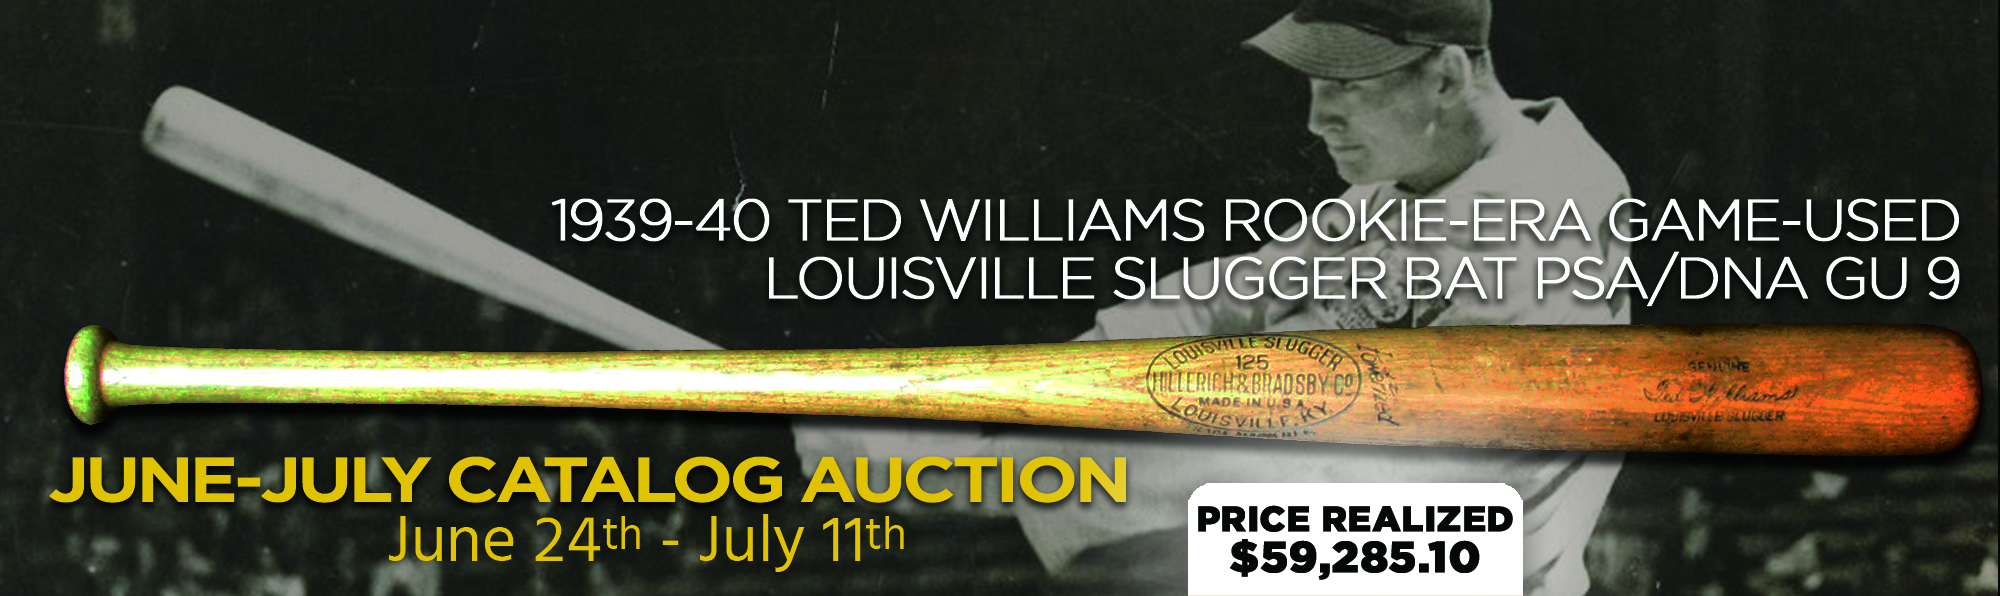 Ted Williams Game-Used Bat PSA/DNA GU 9